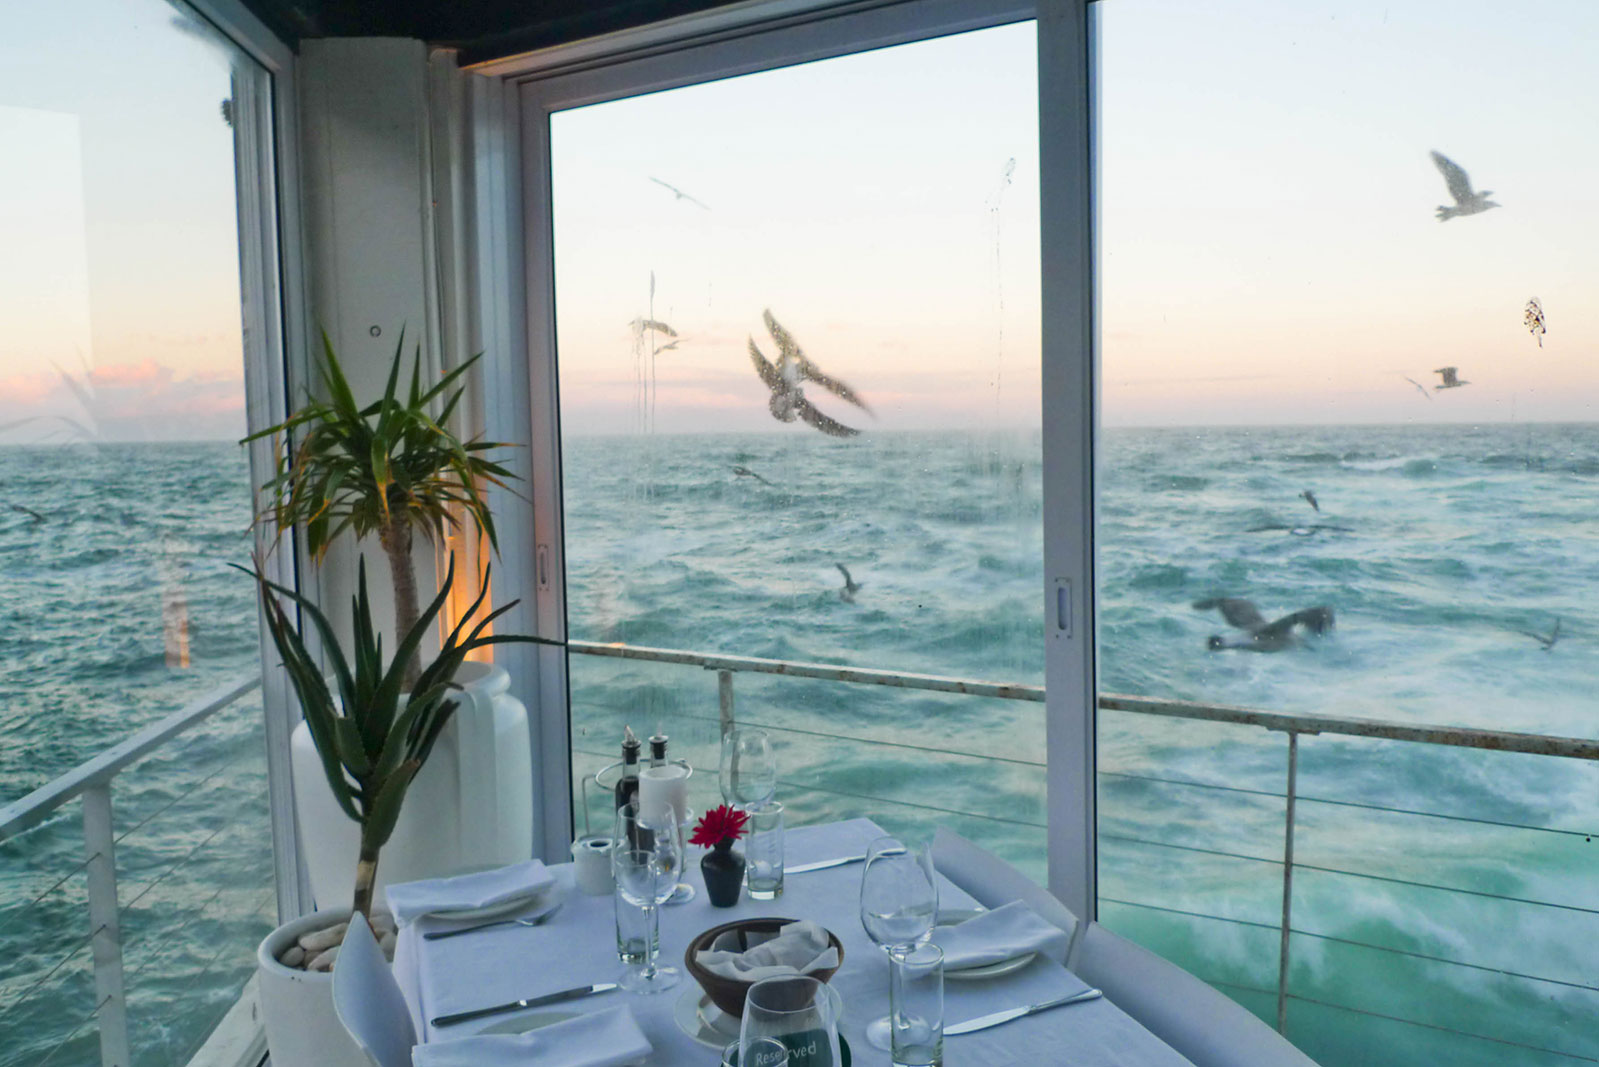 restaurant on the ocean, in Kalk Bay